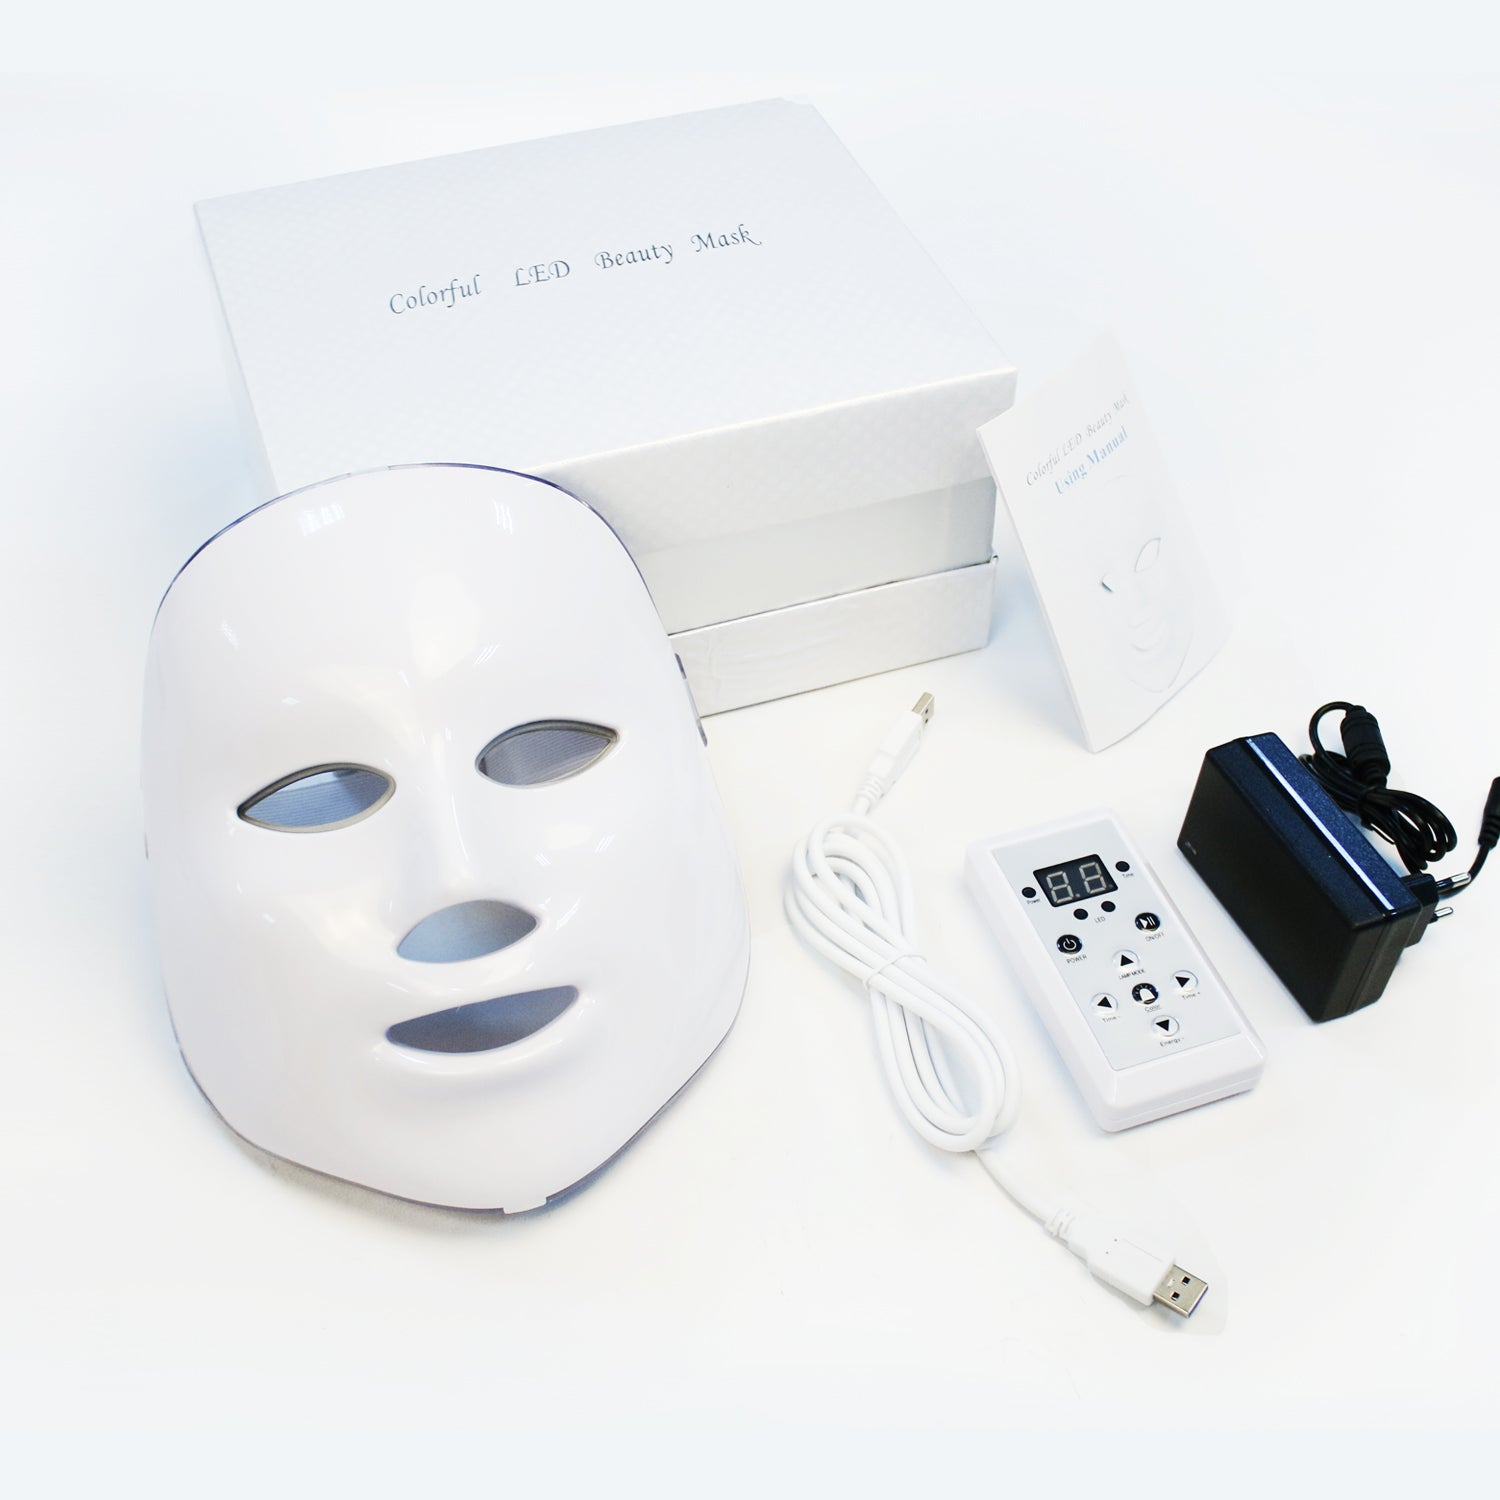 Viral LED Therapy Mask